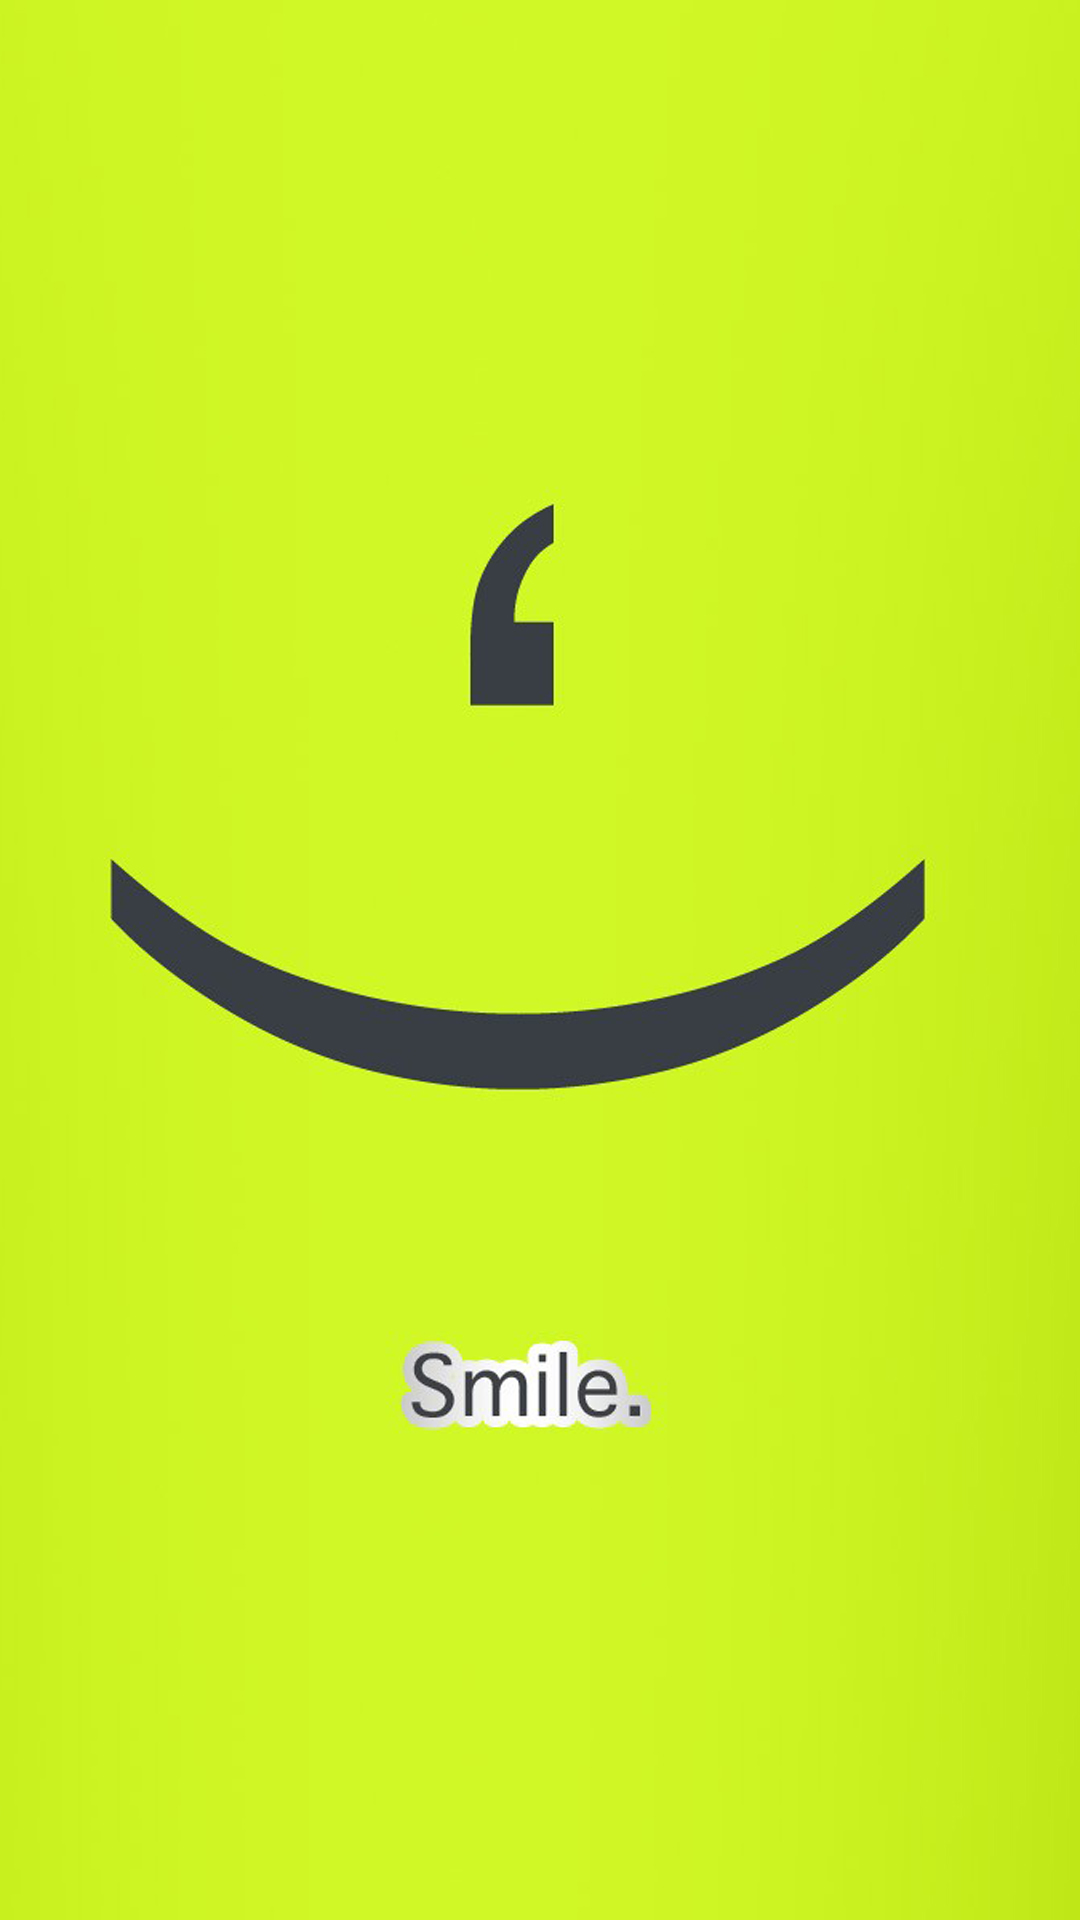 Keep Smile Picture